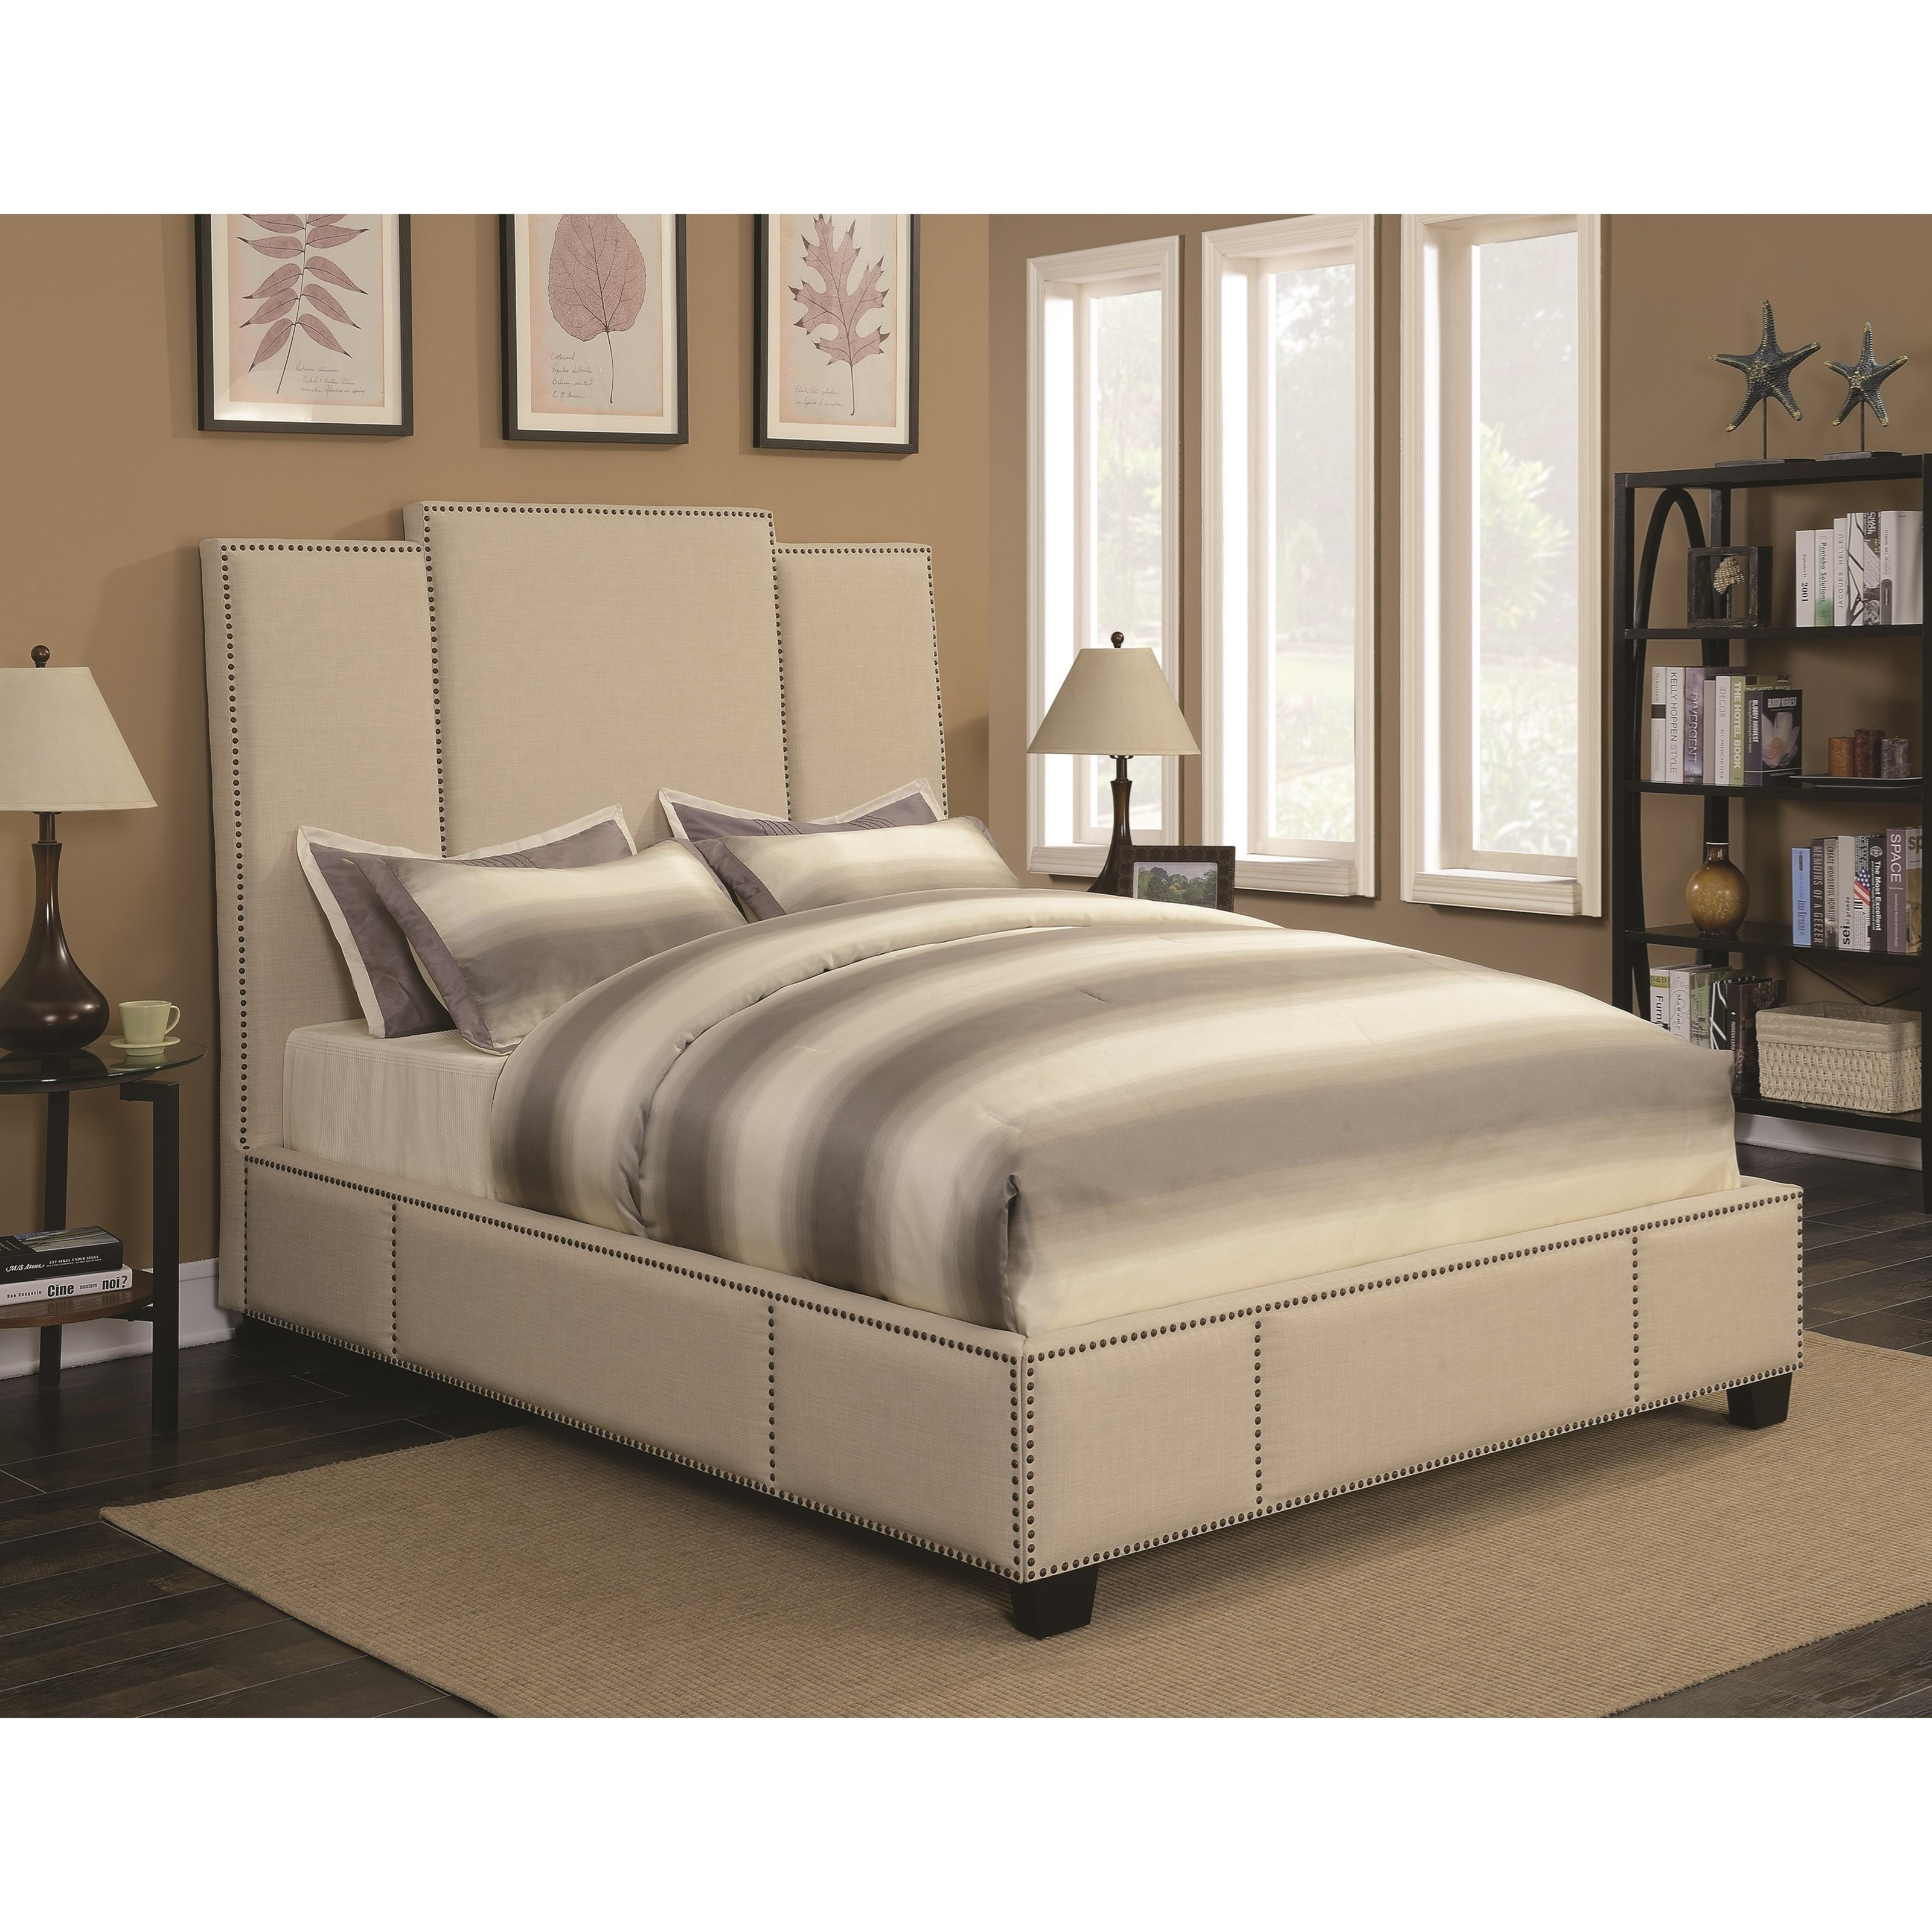 Coaster Lawndale California King Upholstered Bed - Item Number: 300796KW